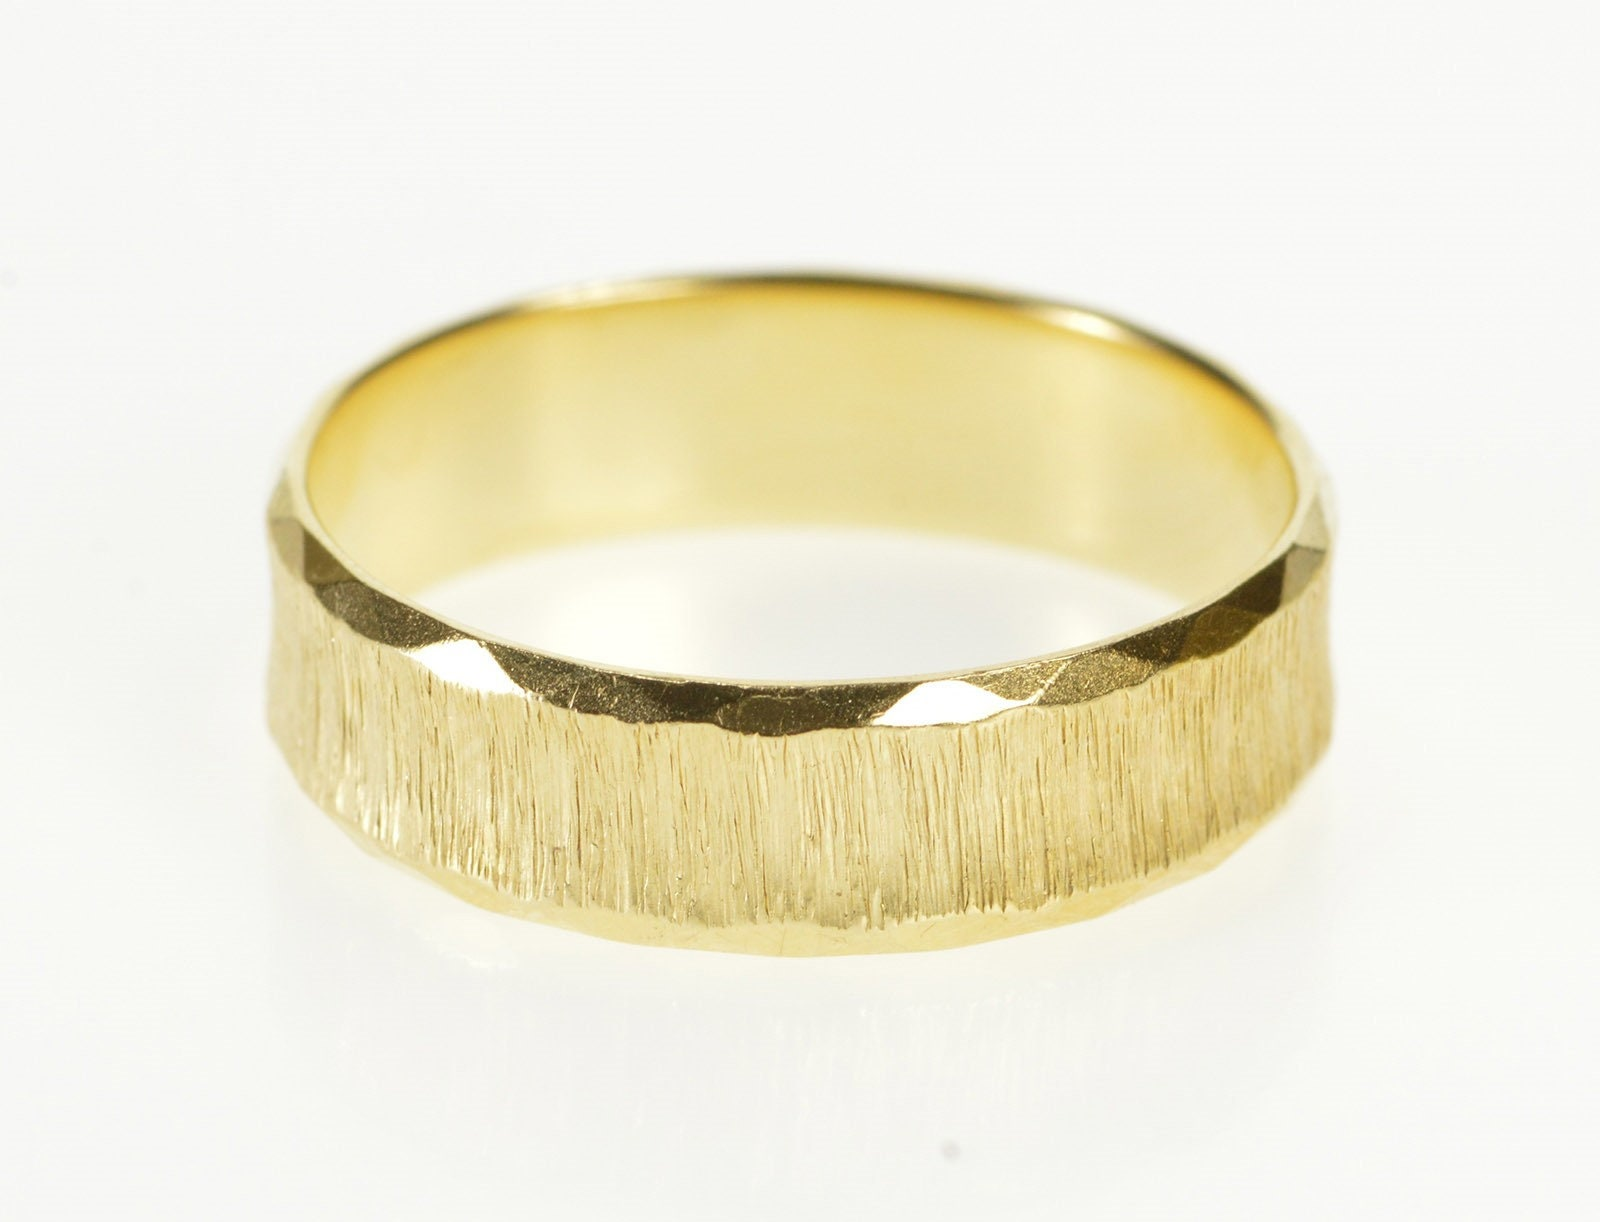 50: Concave Brushed Wedding Band At Websimilar.org